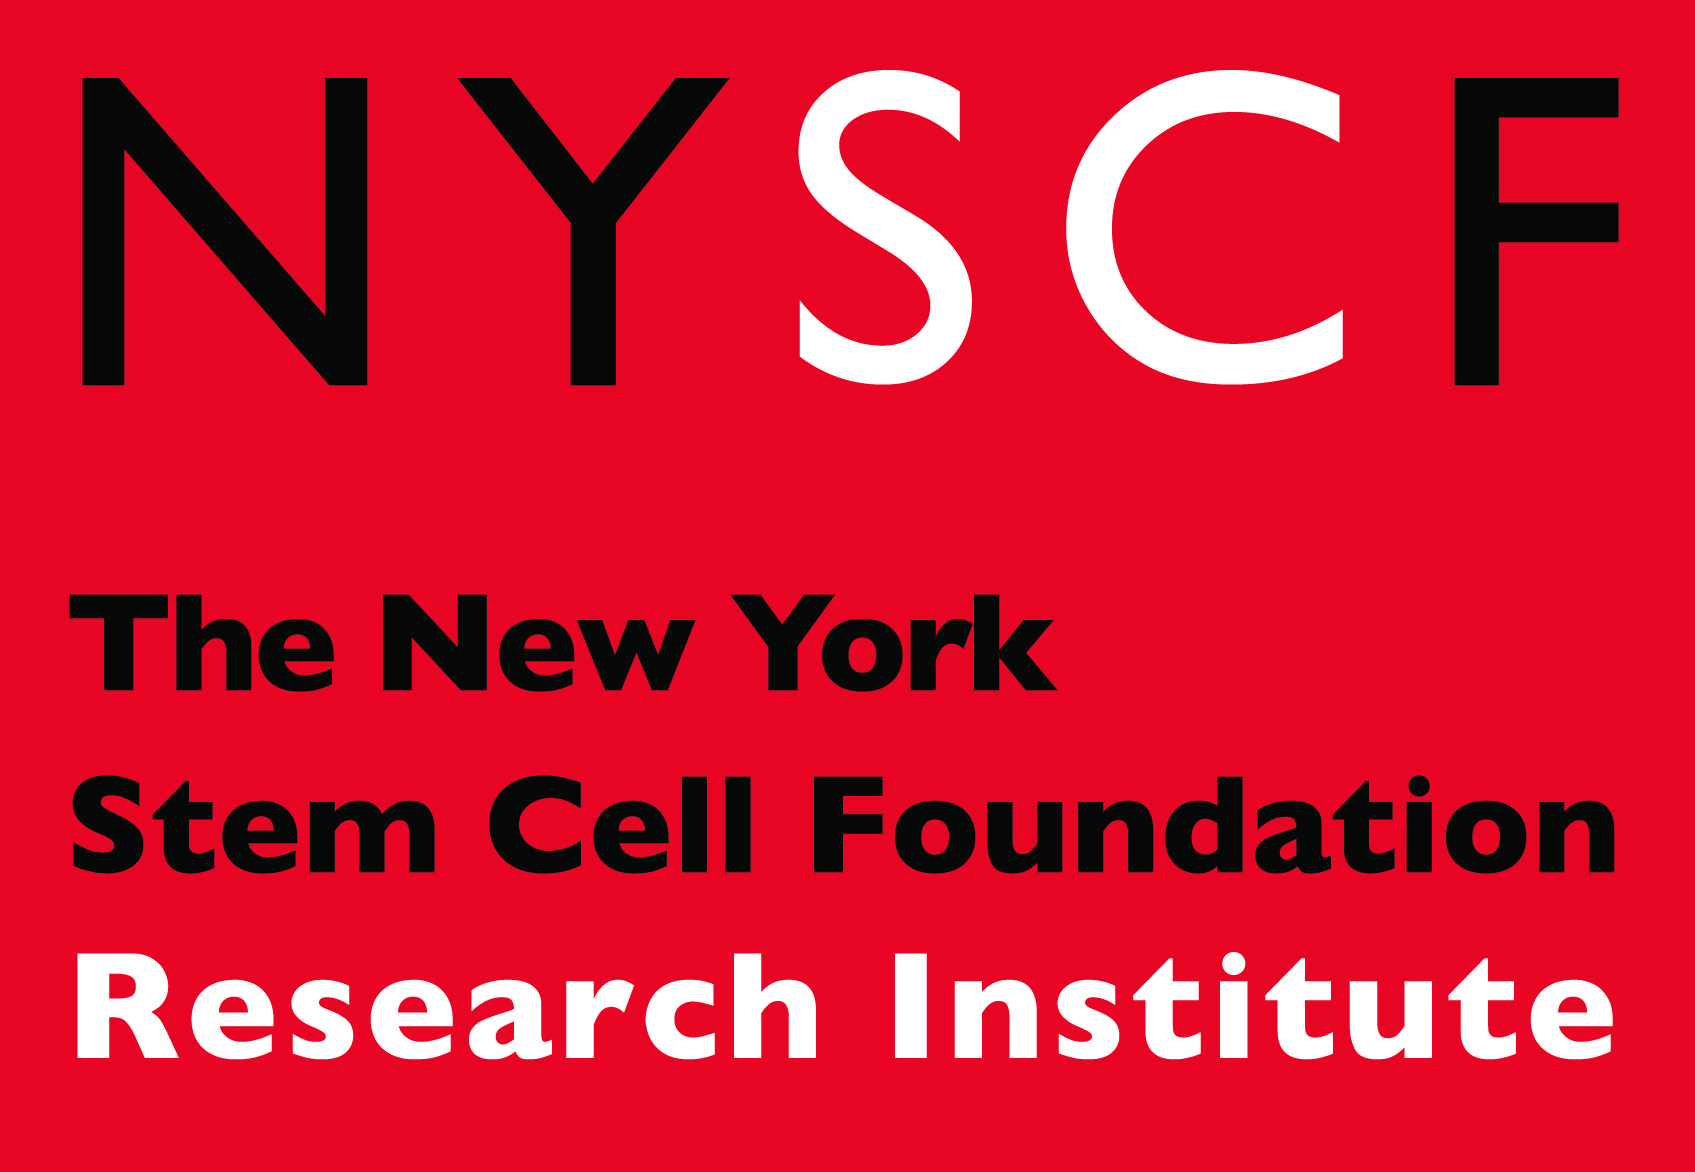 NYSCF Research Institute Logo Bug (CMYK)